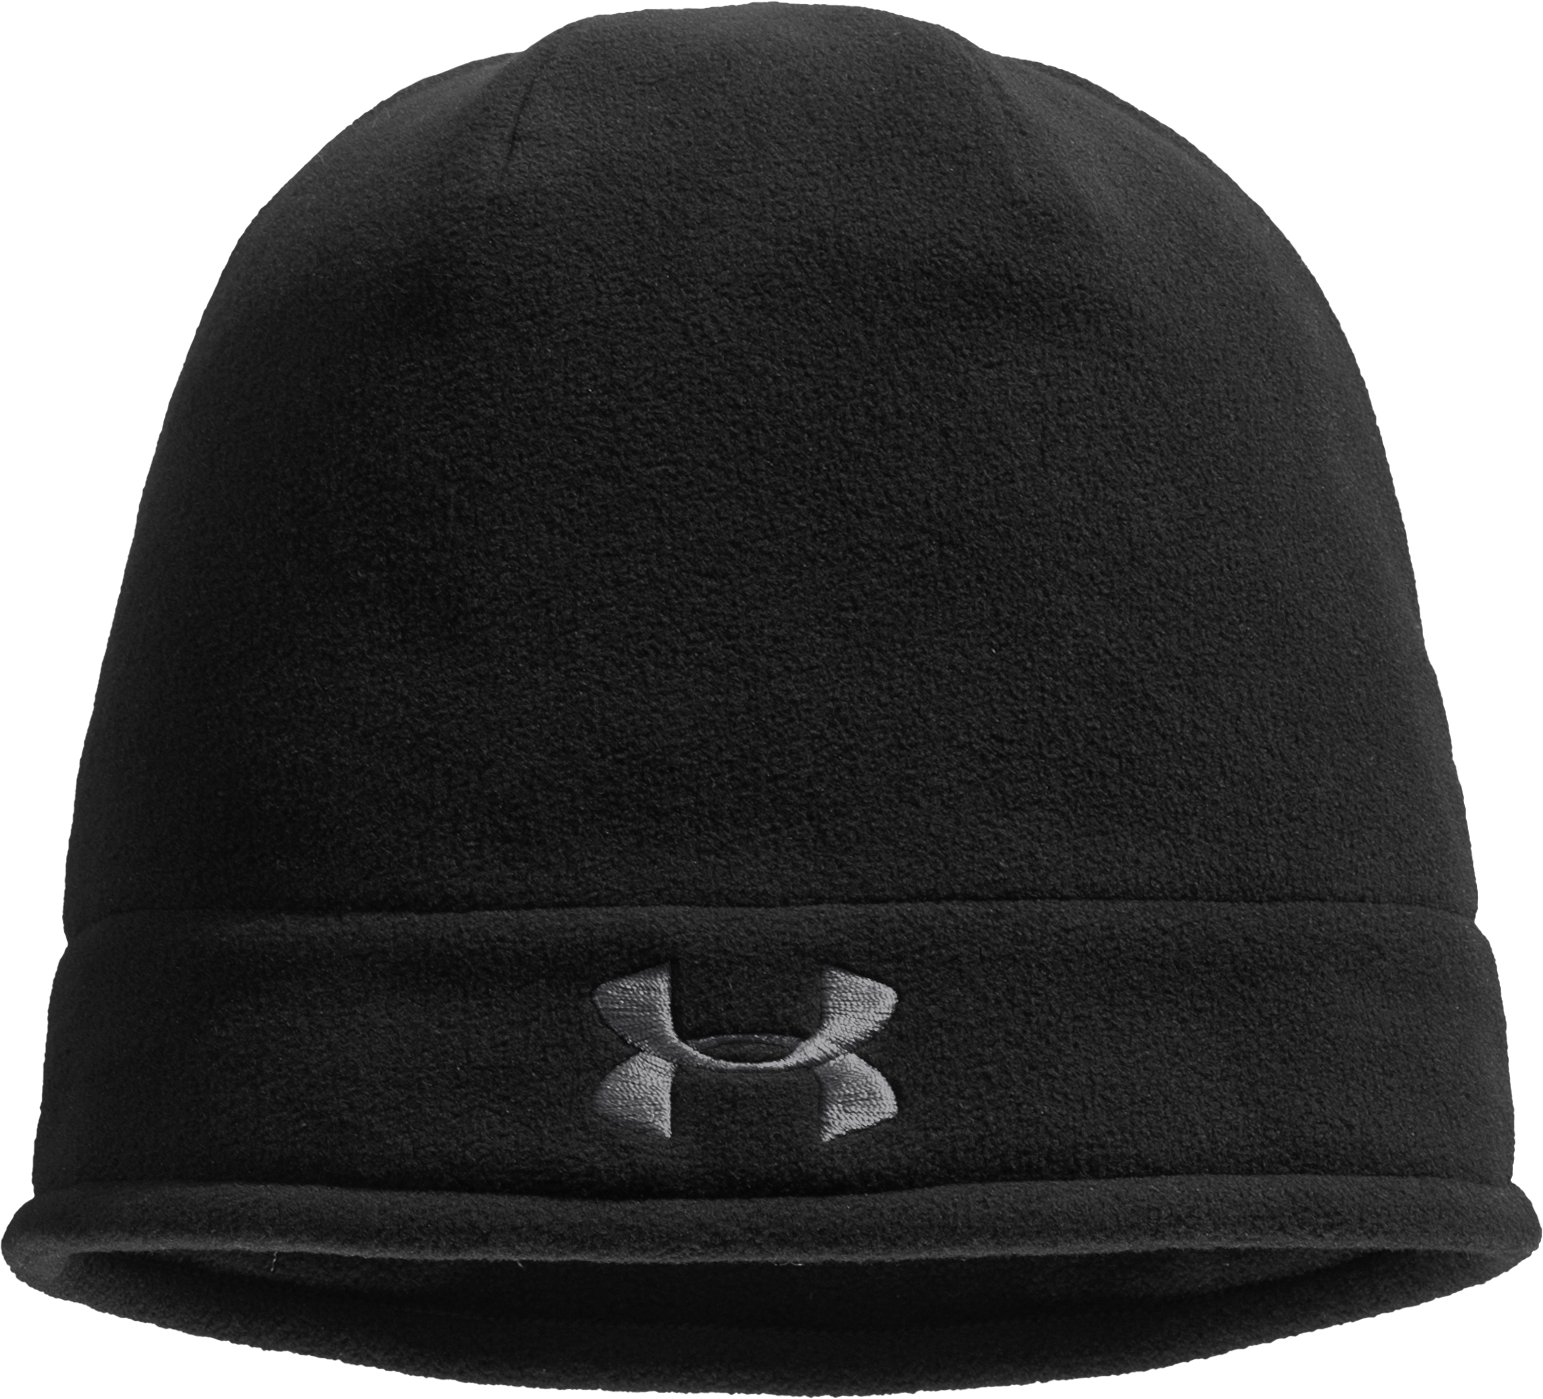 Men's ColdGear® Infrared Fleece Storm Beanie, Black , zoomed image